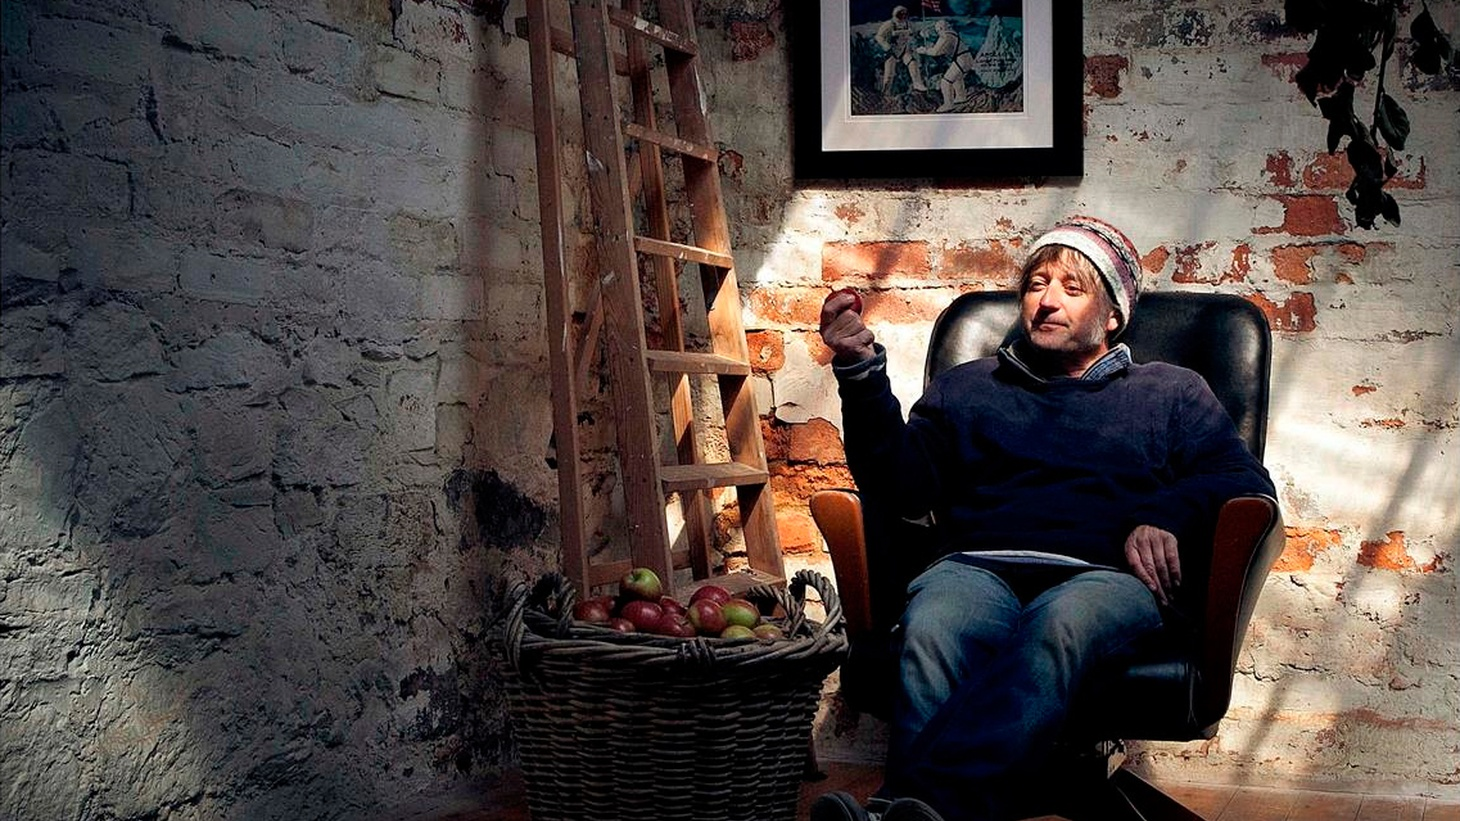 Fife Kenny Anderson, aka King Creosote, plays with push and pull that tradition and technology (or analogue and digital) hold on us while creating the feeling of being caught in a web somewhere between Heaven and Earth.